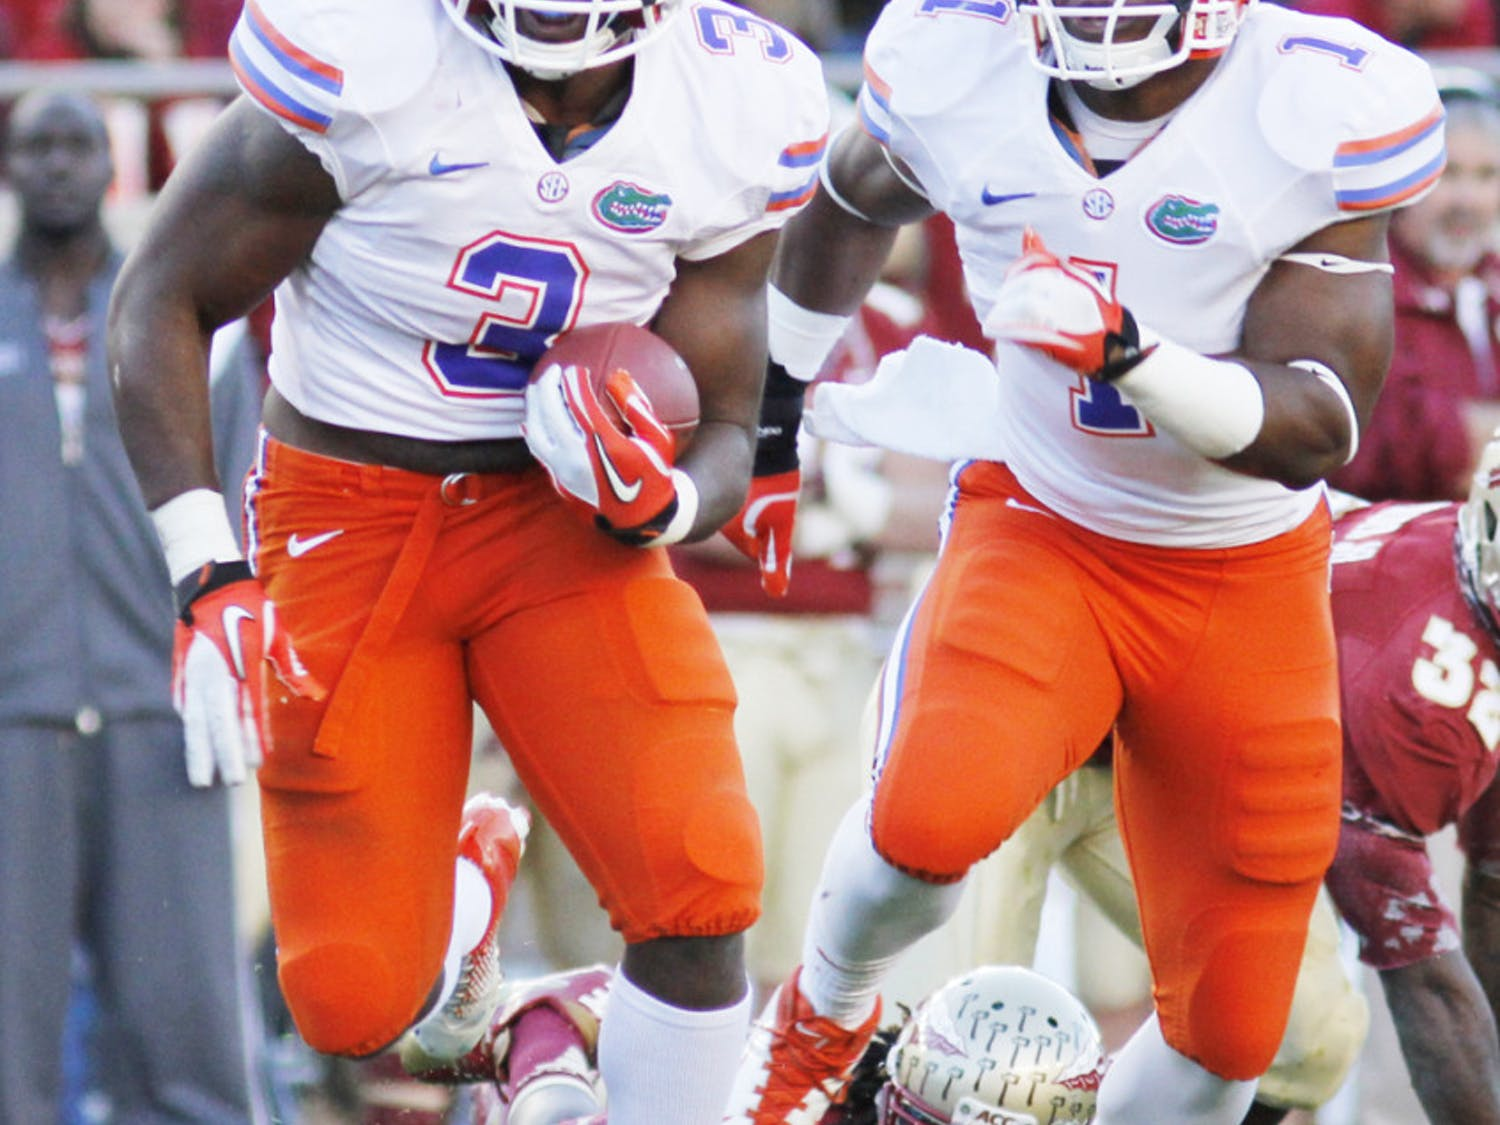 Jelani Jenkins (3) returns an interception during Florida's 37-26 win against Florida State on Nov. 24 at Doak Campbell Stadium. Jenkins was one of three former Gators chosen by the Miami Dolphins on Friday.